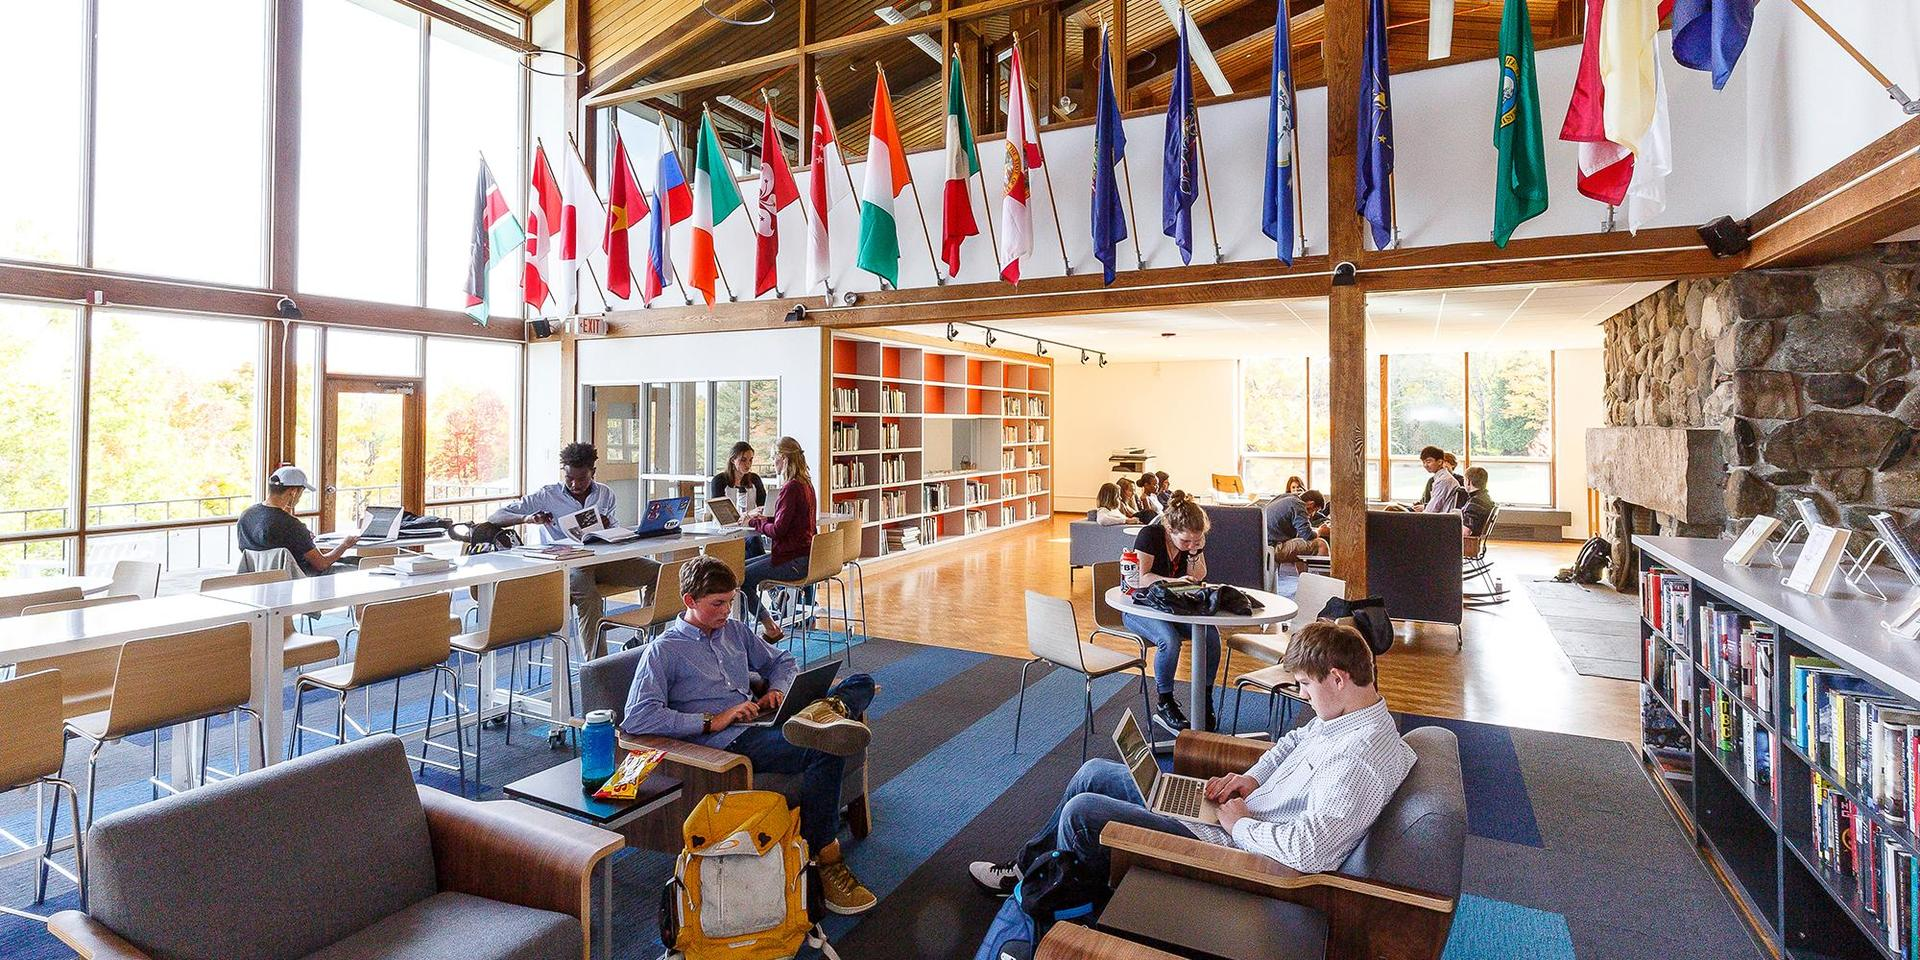 Students studying in McGoldrick Library and Research Center.